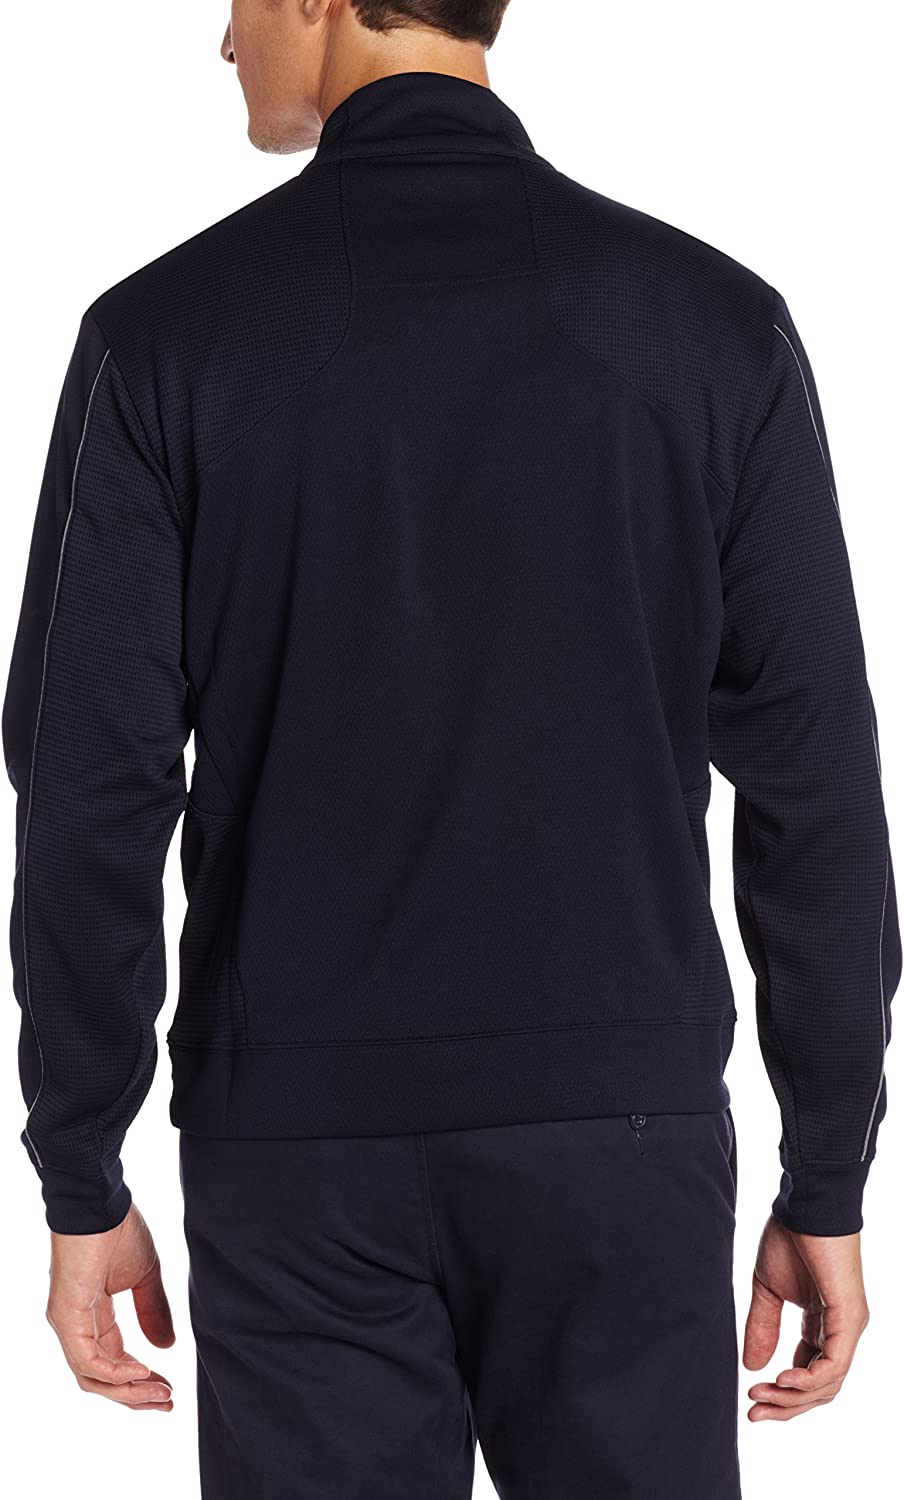 Cutter & Buck MCK08861 Men's DryTec Edge Half Zip Jackets: Clothing